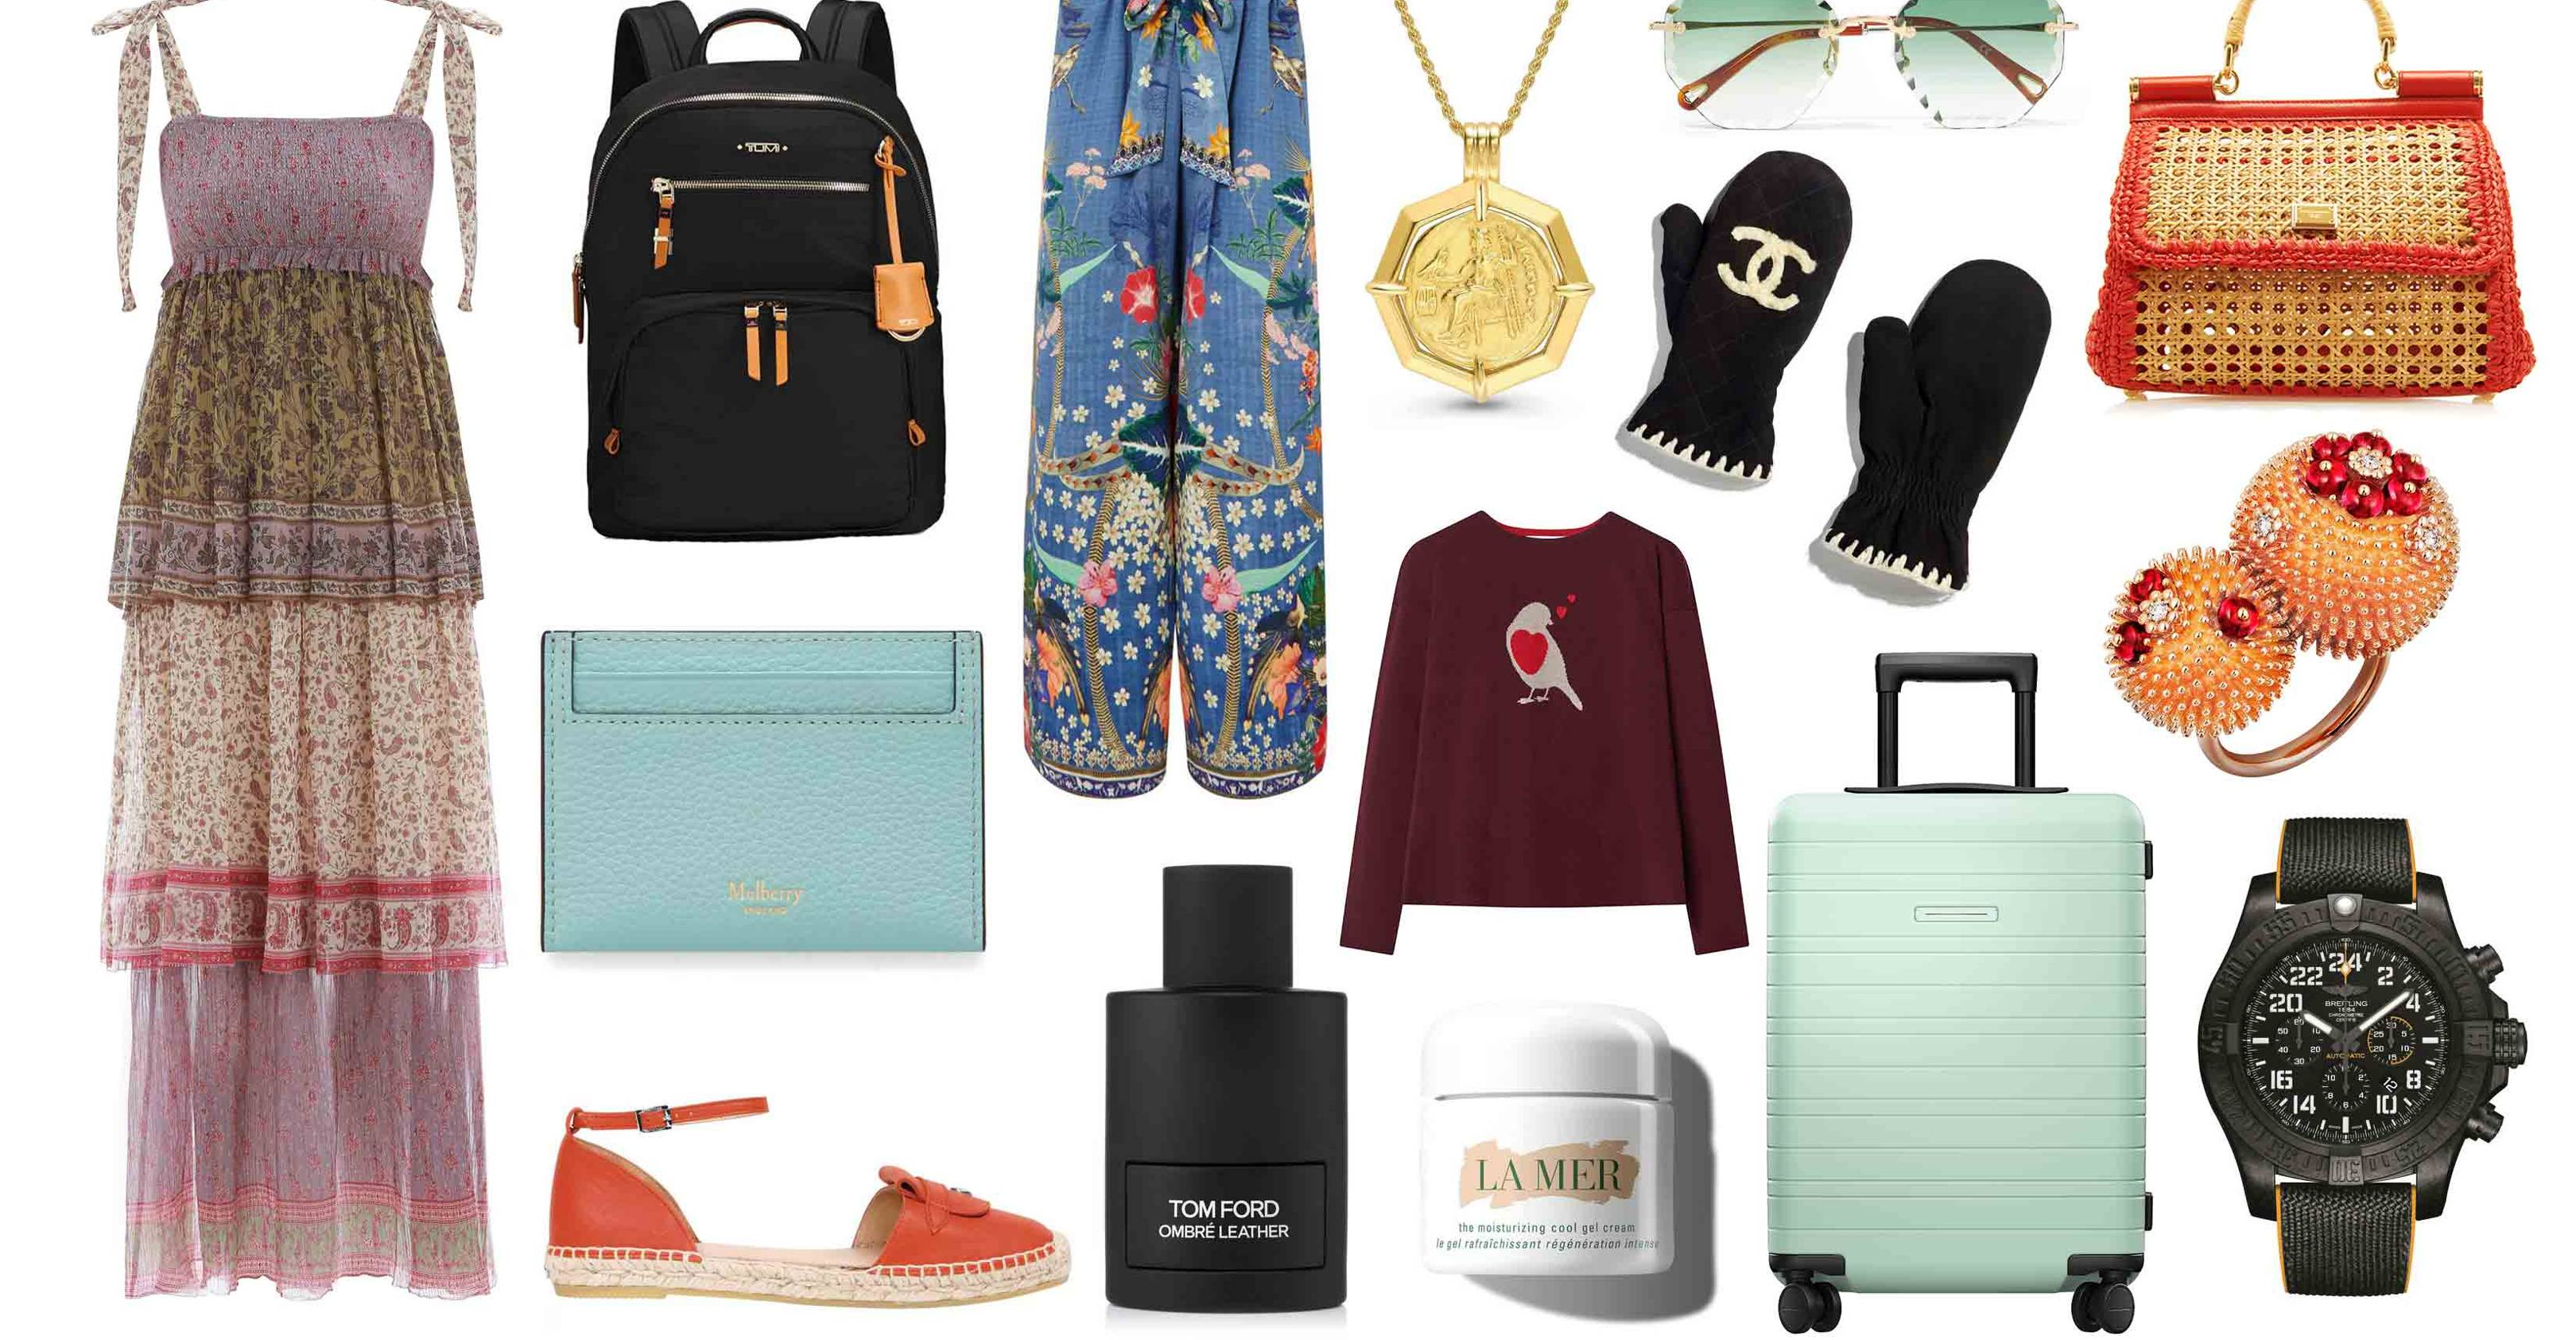 Travel gift ideas for globetrotters